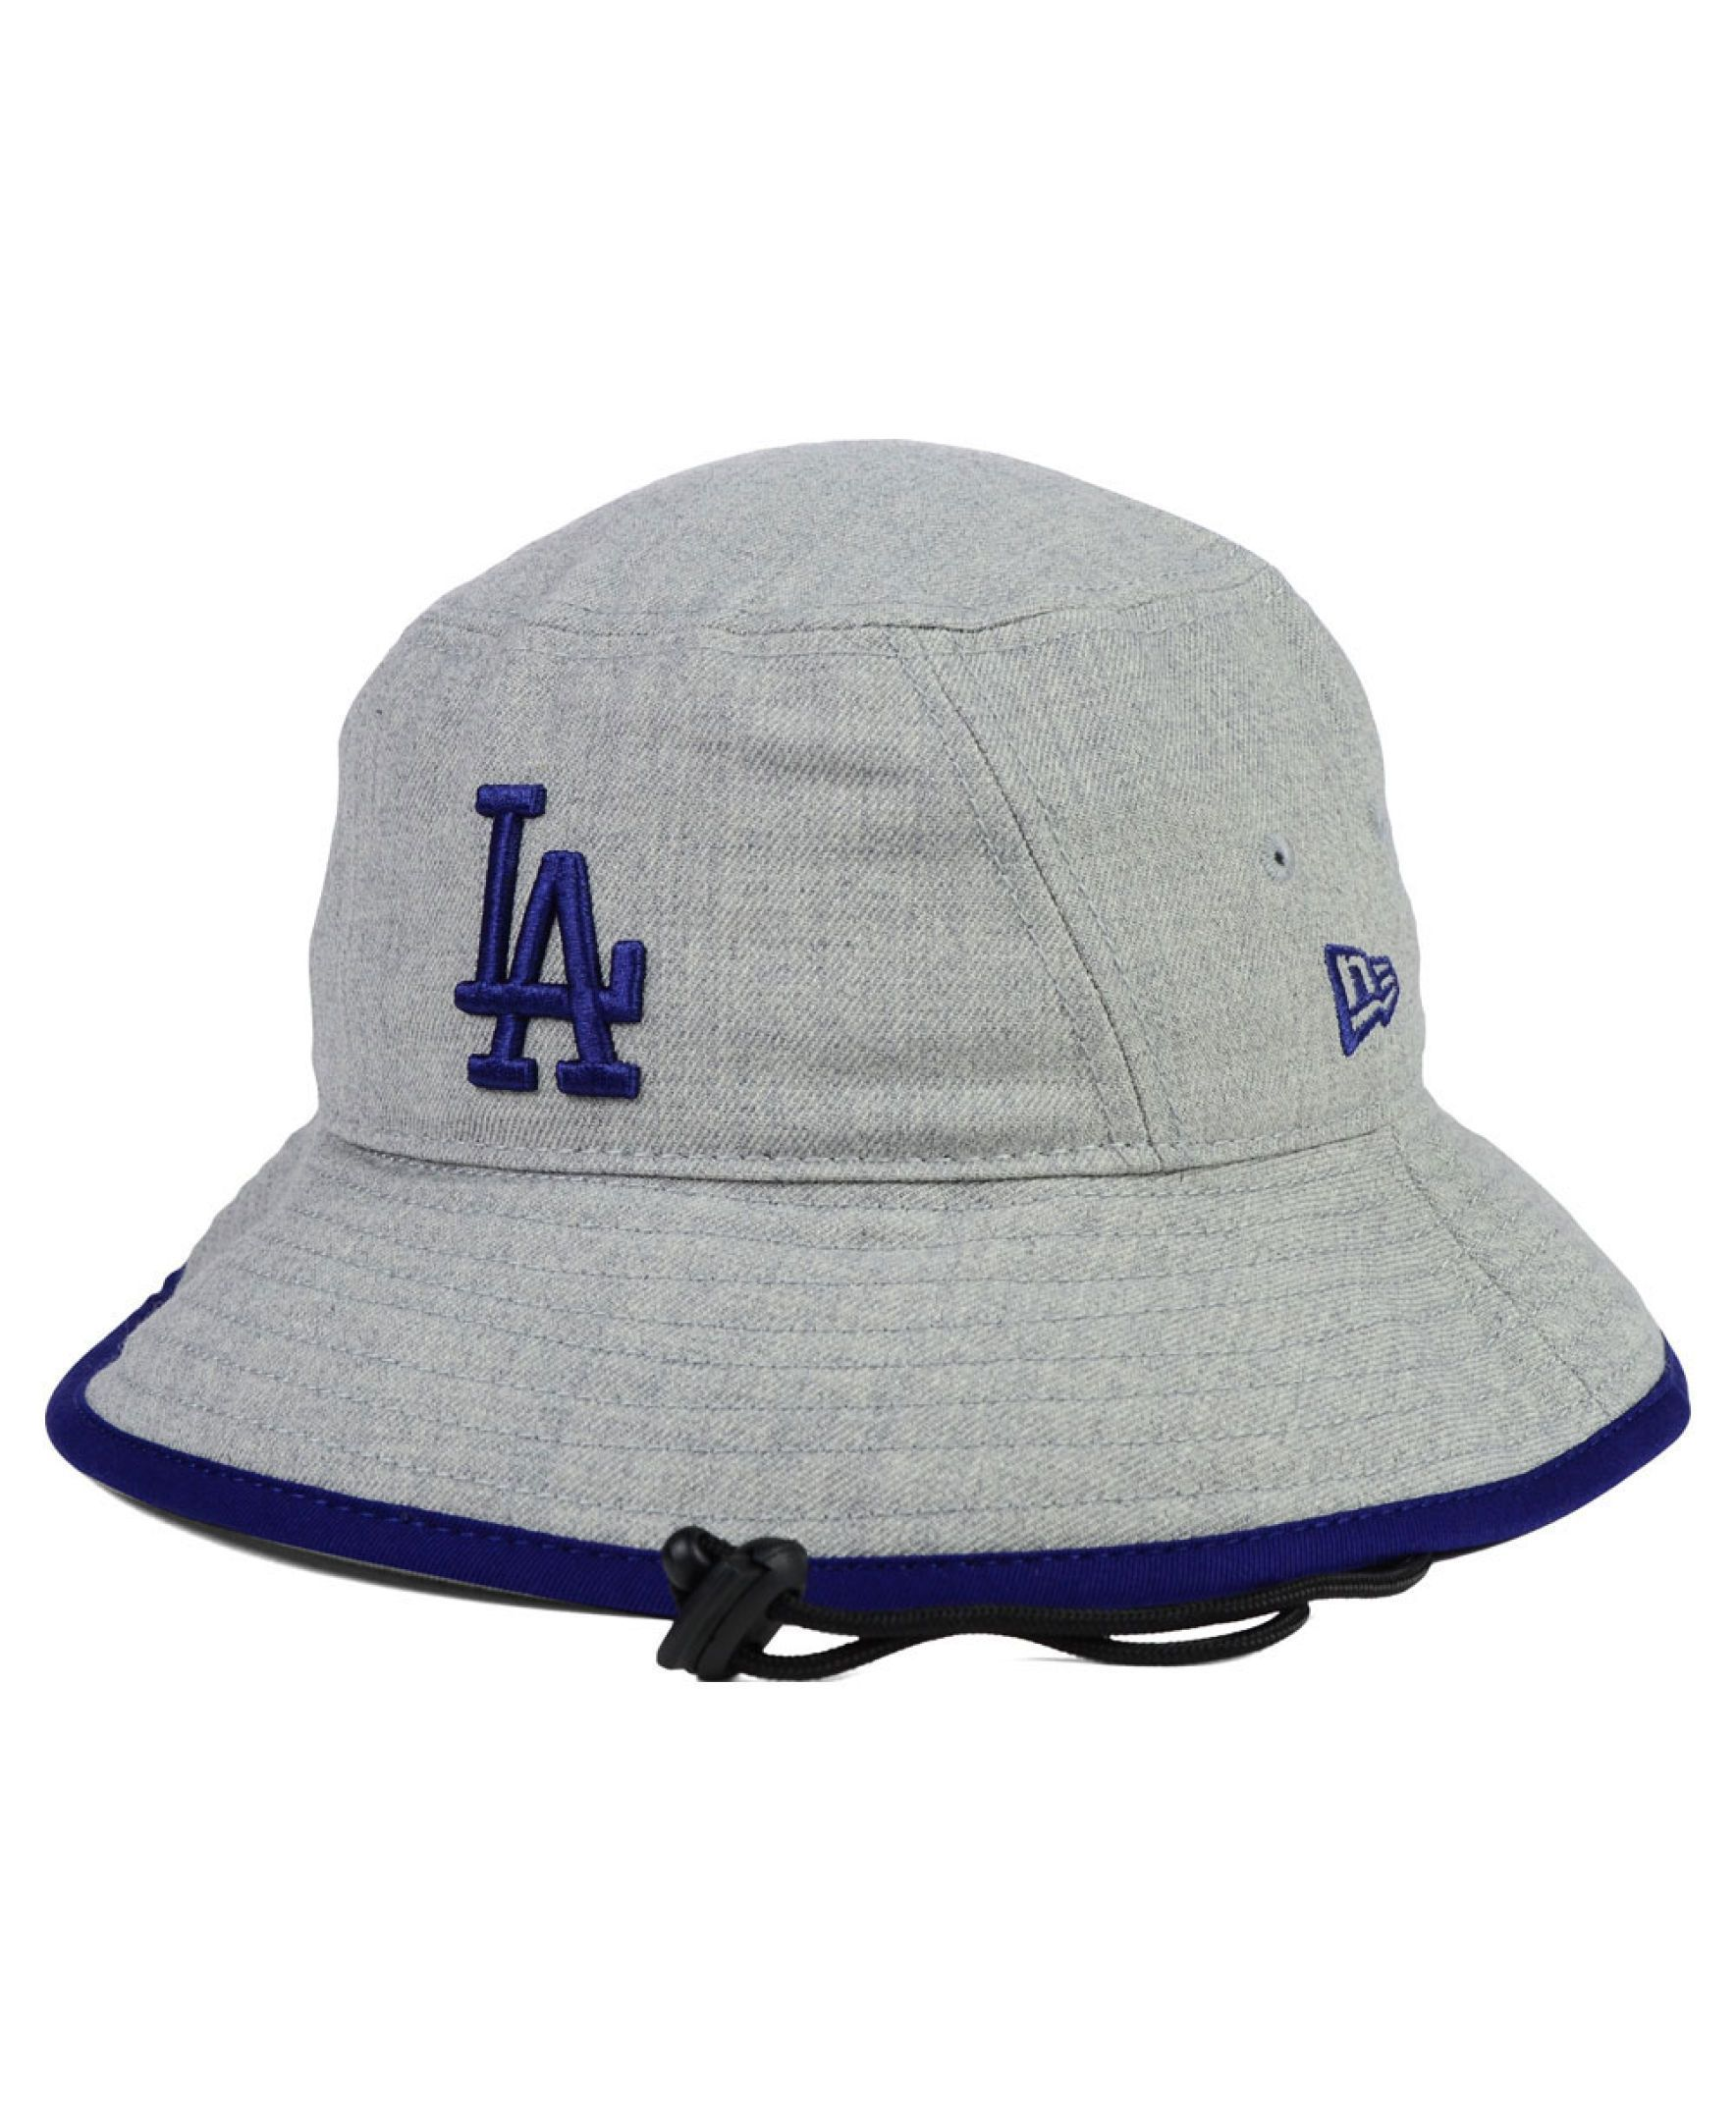 New Era Los Angeles Dodgers Heather Tipped Bucket Hat  2b20890895a